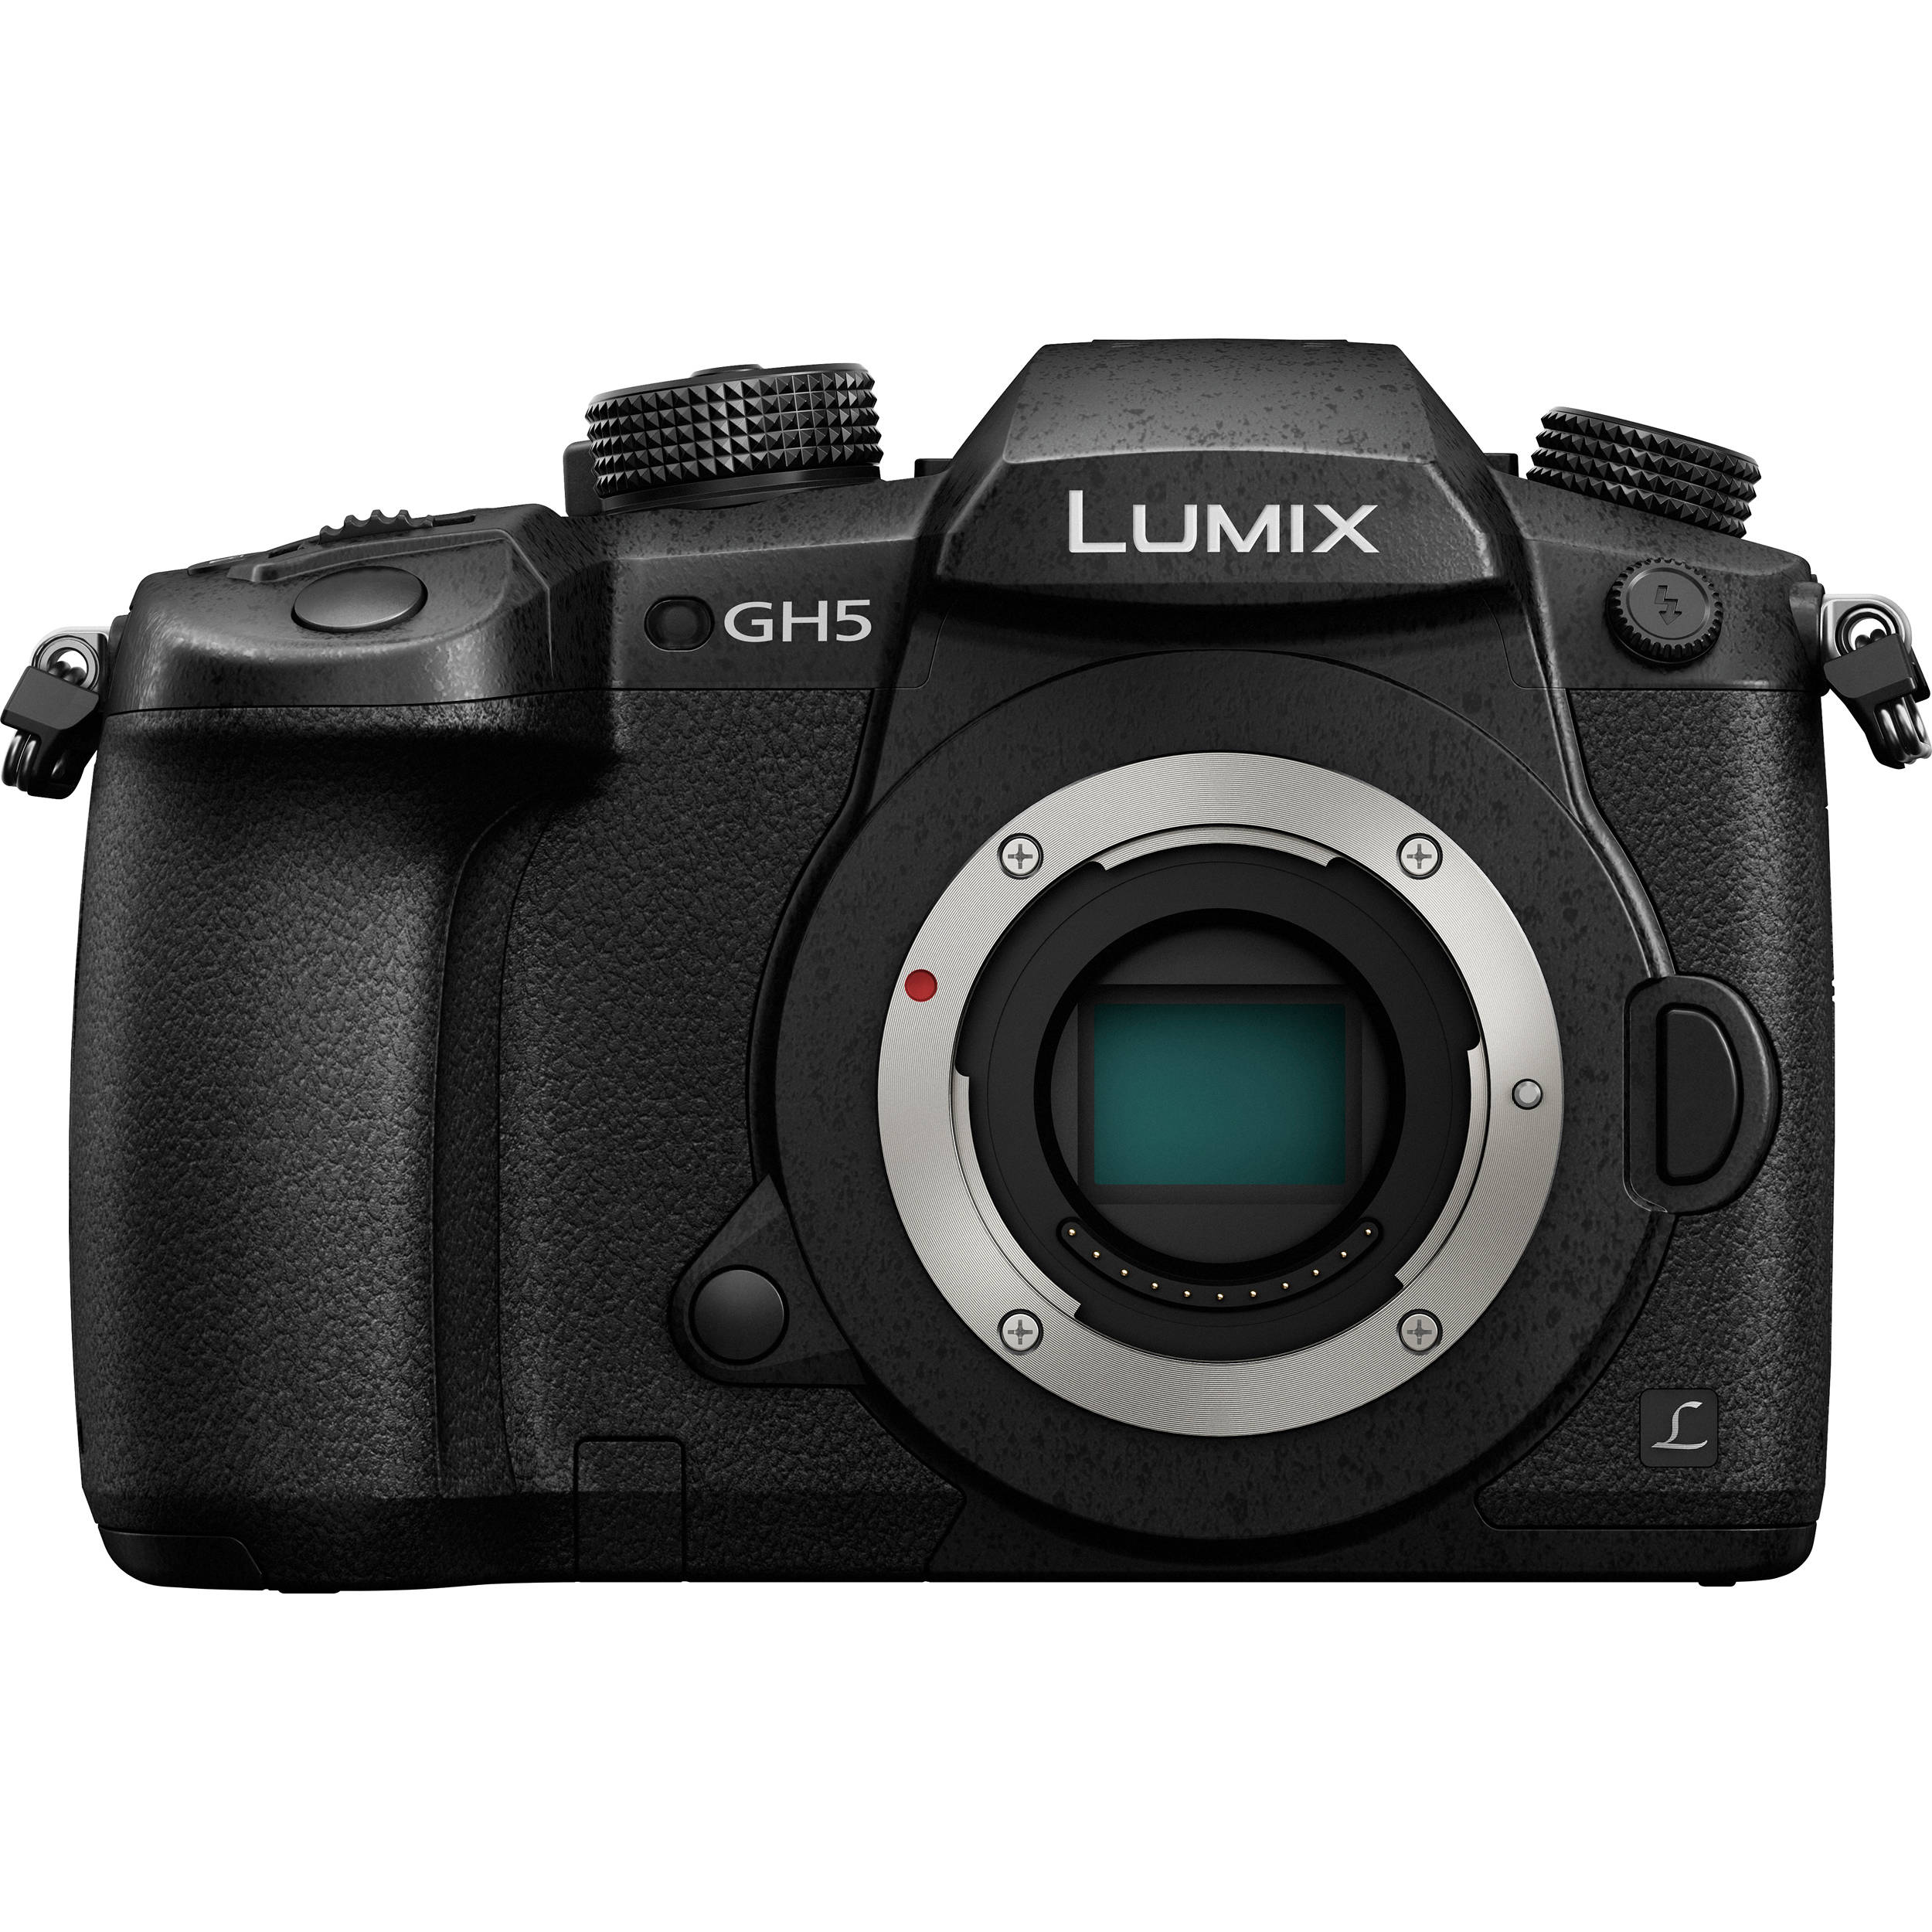 Panasonic GH5 Mirrorless Micro Four Thirds DC-GH5 Lumix Camera